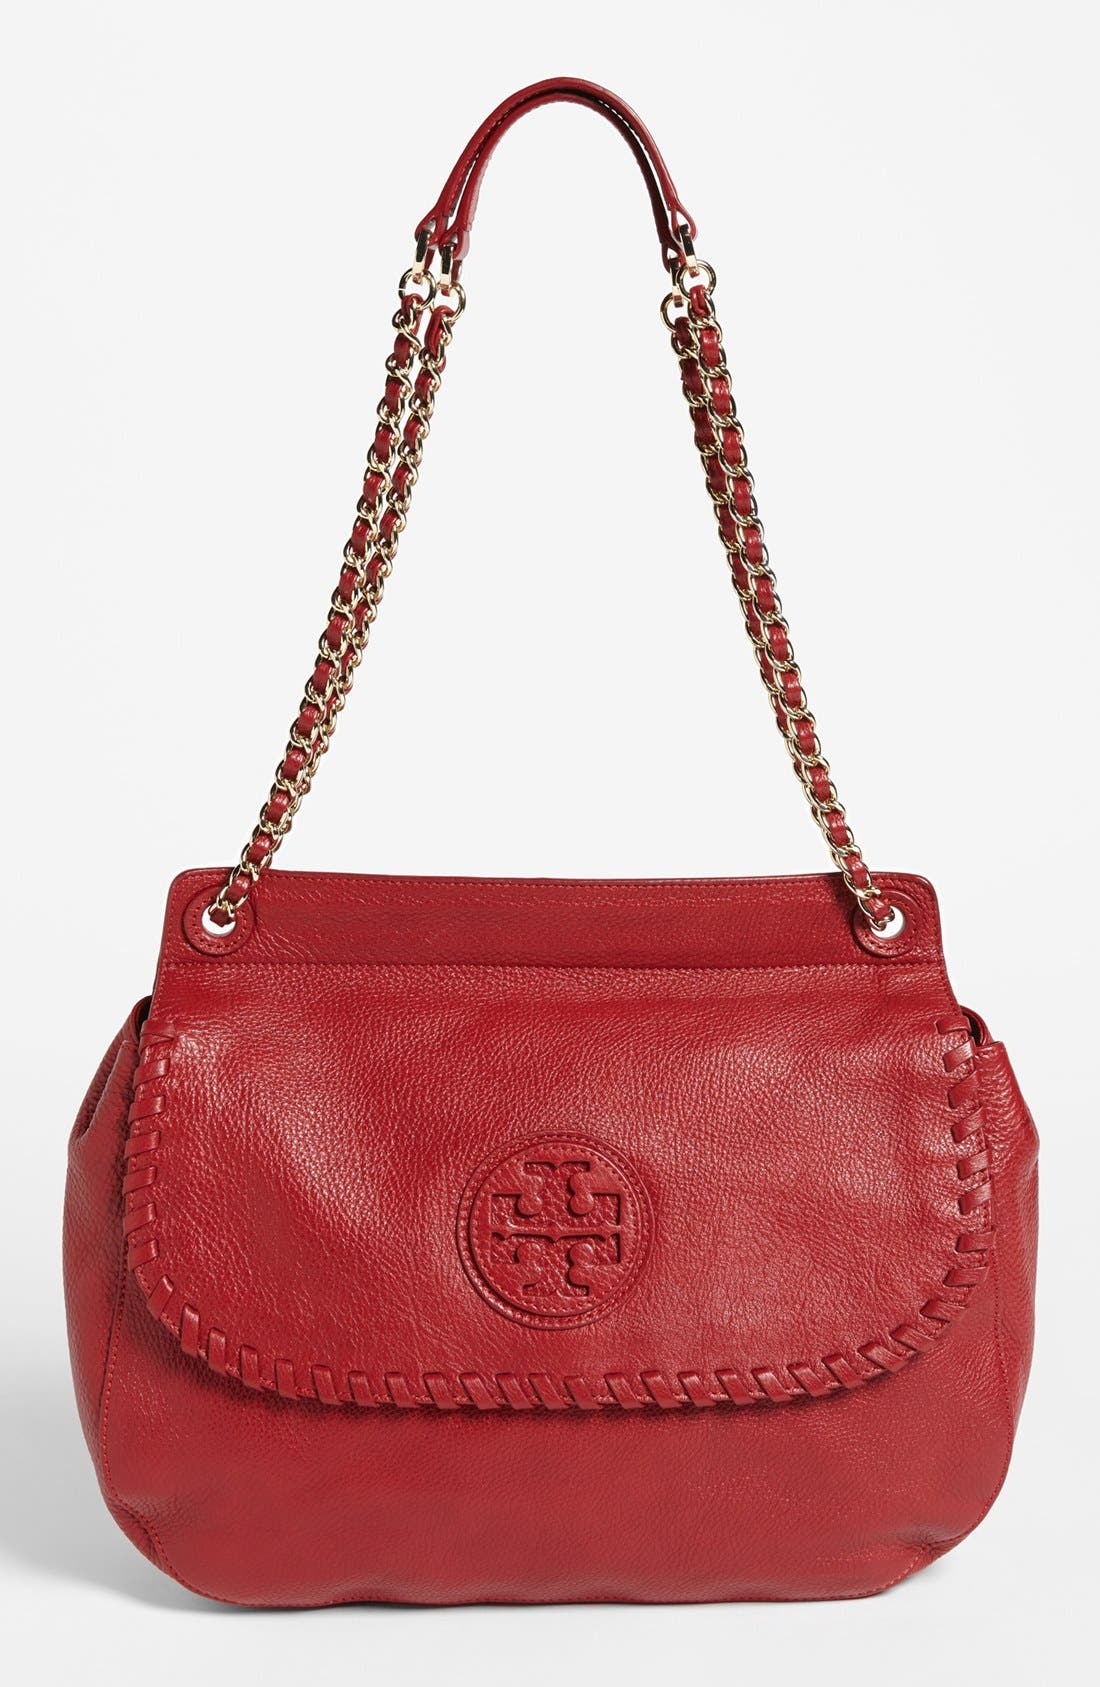 Main Image - Tory Burch 'Marion' Leather Saddlebag